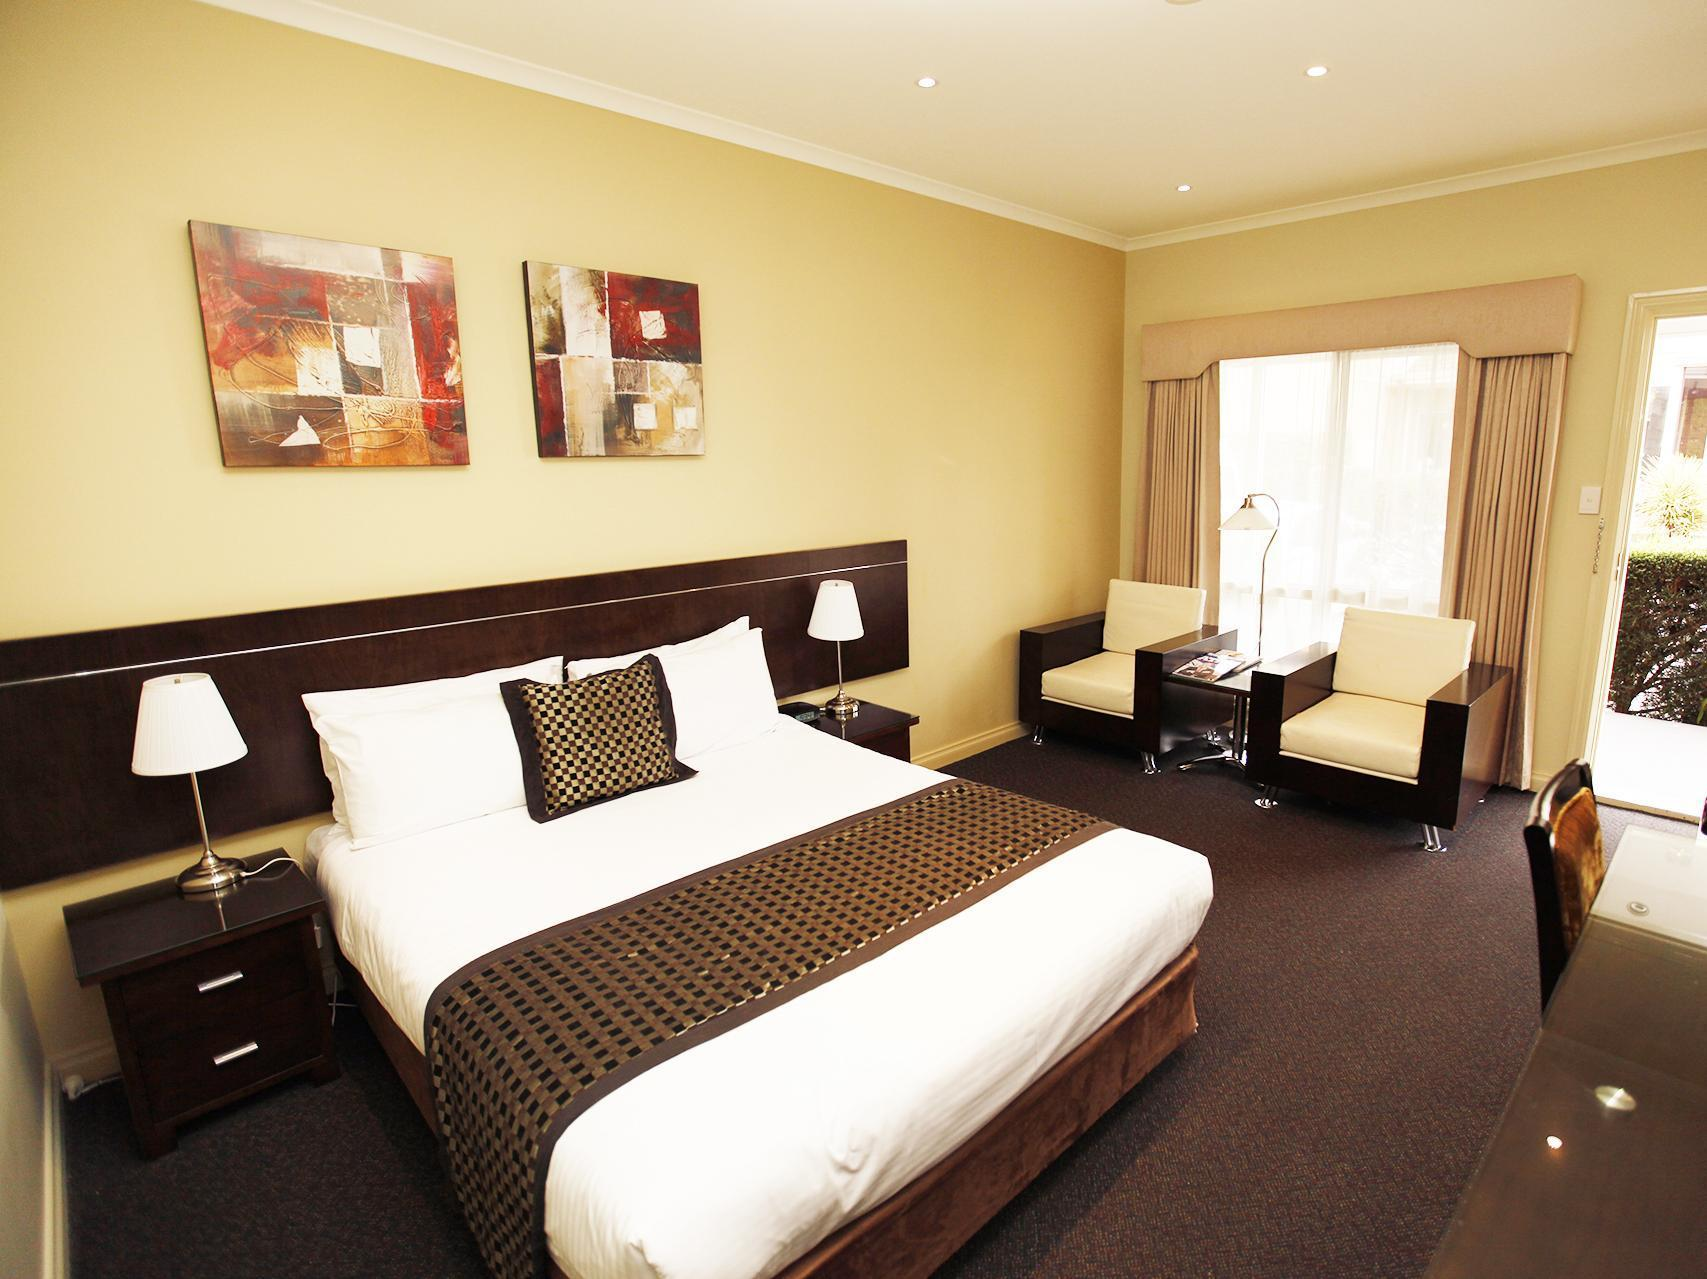 Best Western Melbourne Airport Motel and Convention, Hume - Craigieburn